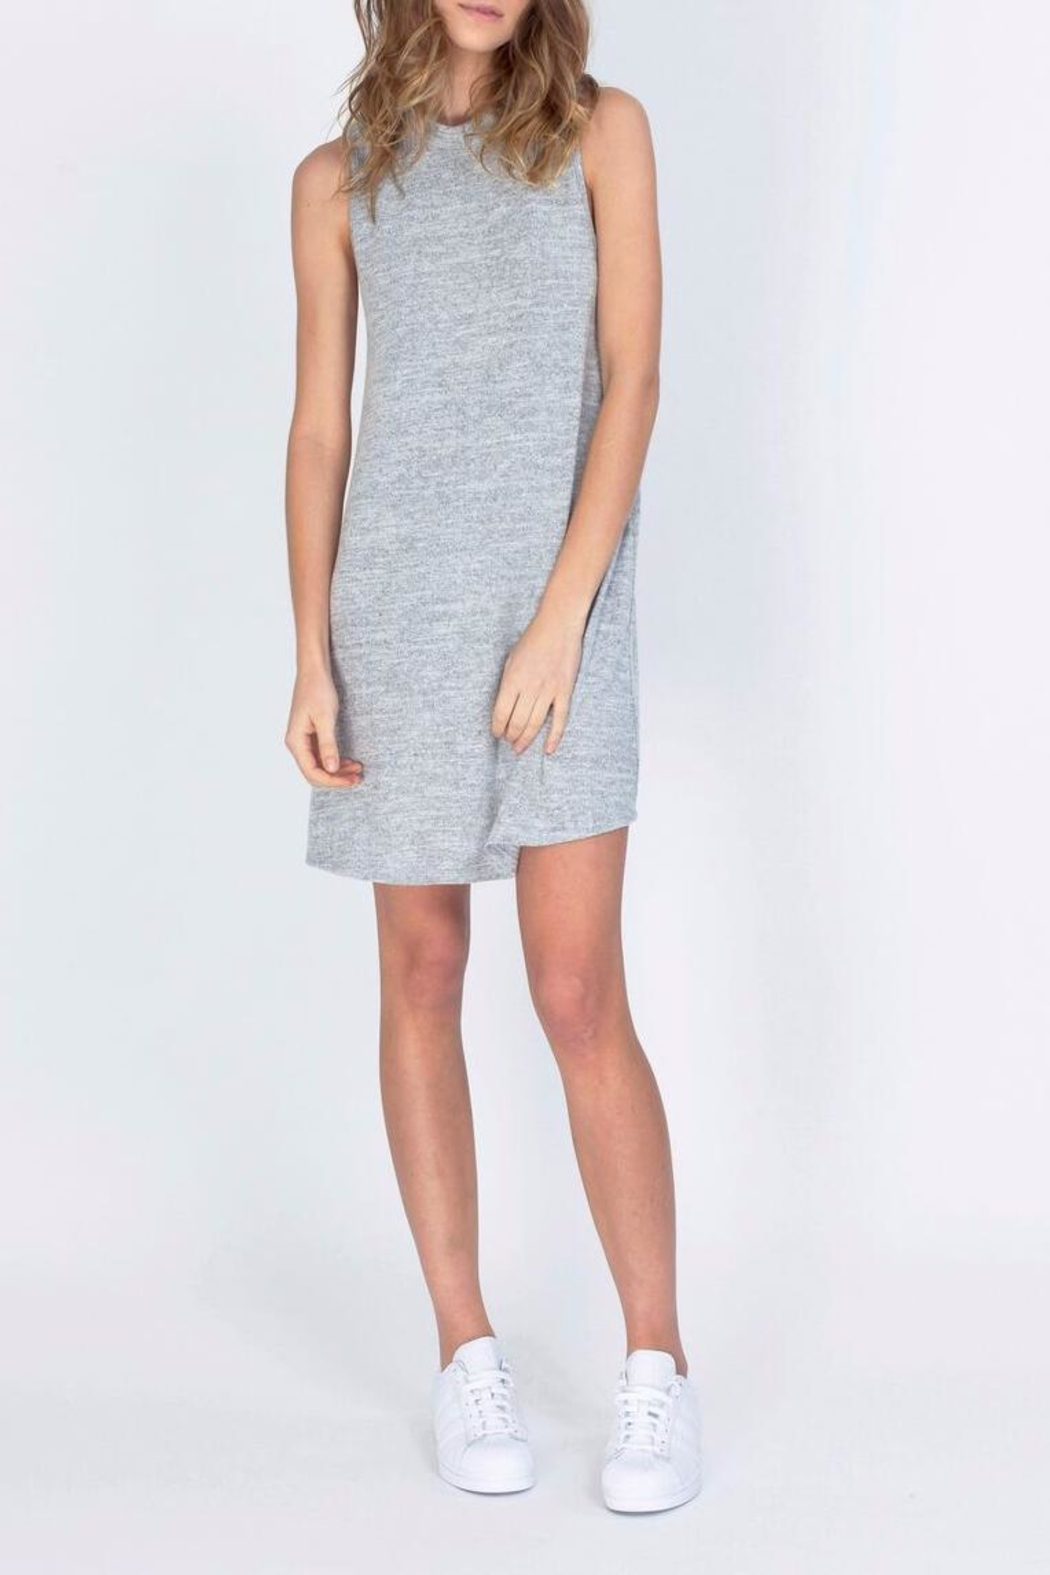 Gentle Fawn Motivated Gray Dress - Main Image